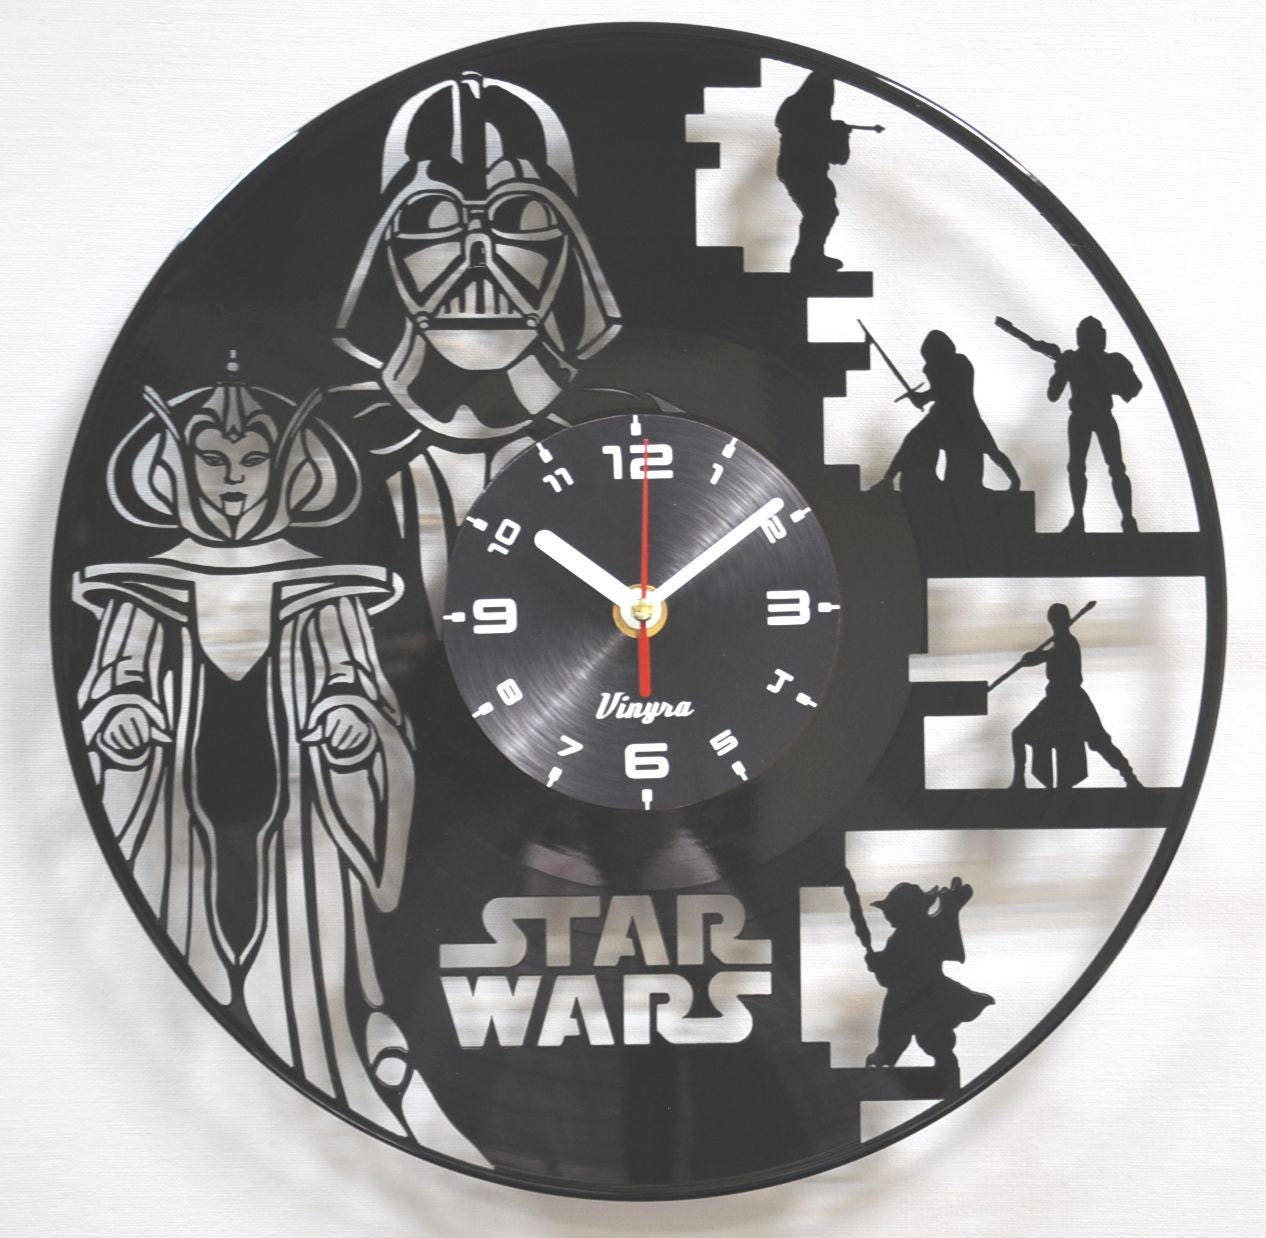 Star Wars Clock Vinyl Wall Clock Darth Vader Art Wall Decor